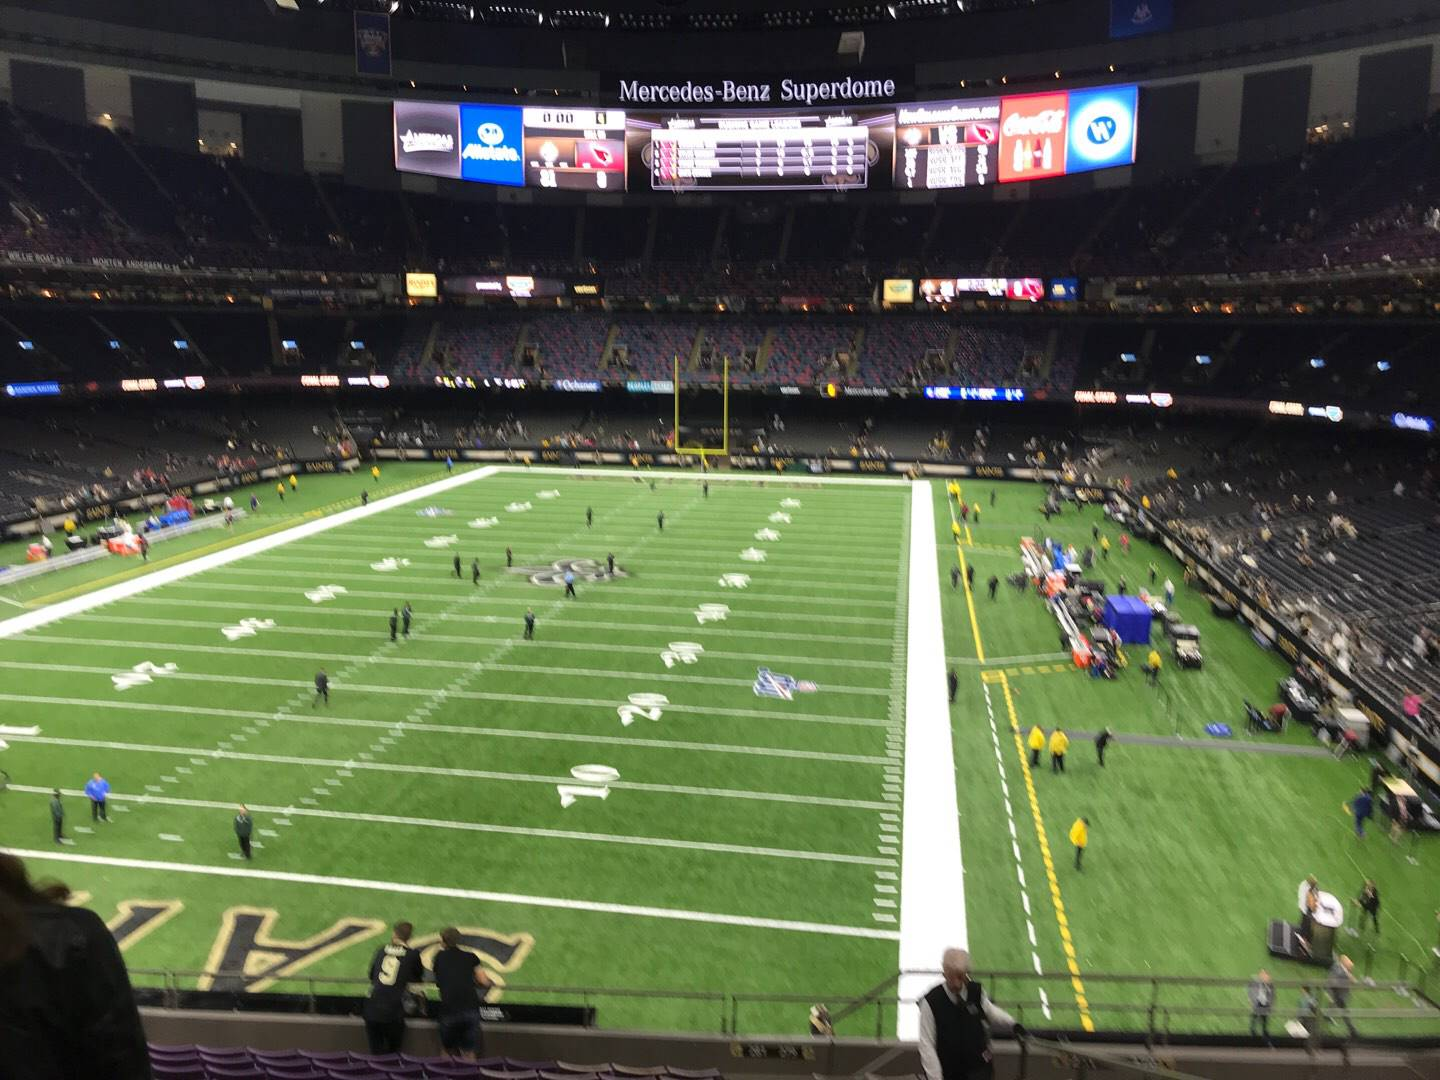 Mercedes-Benz Superdome Section 346 Row 14 Seat 8